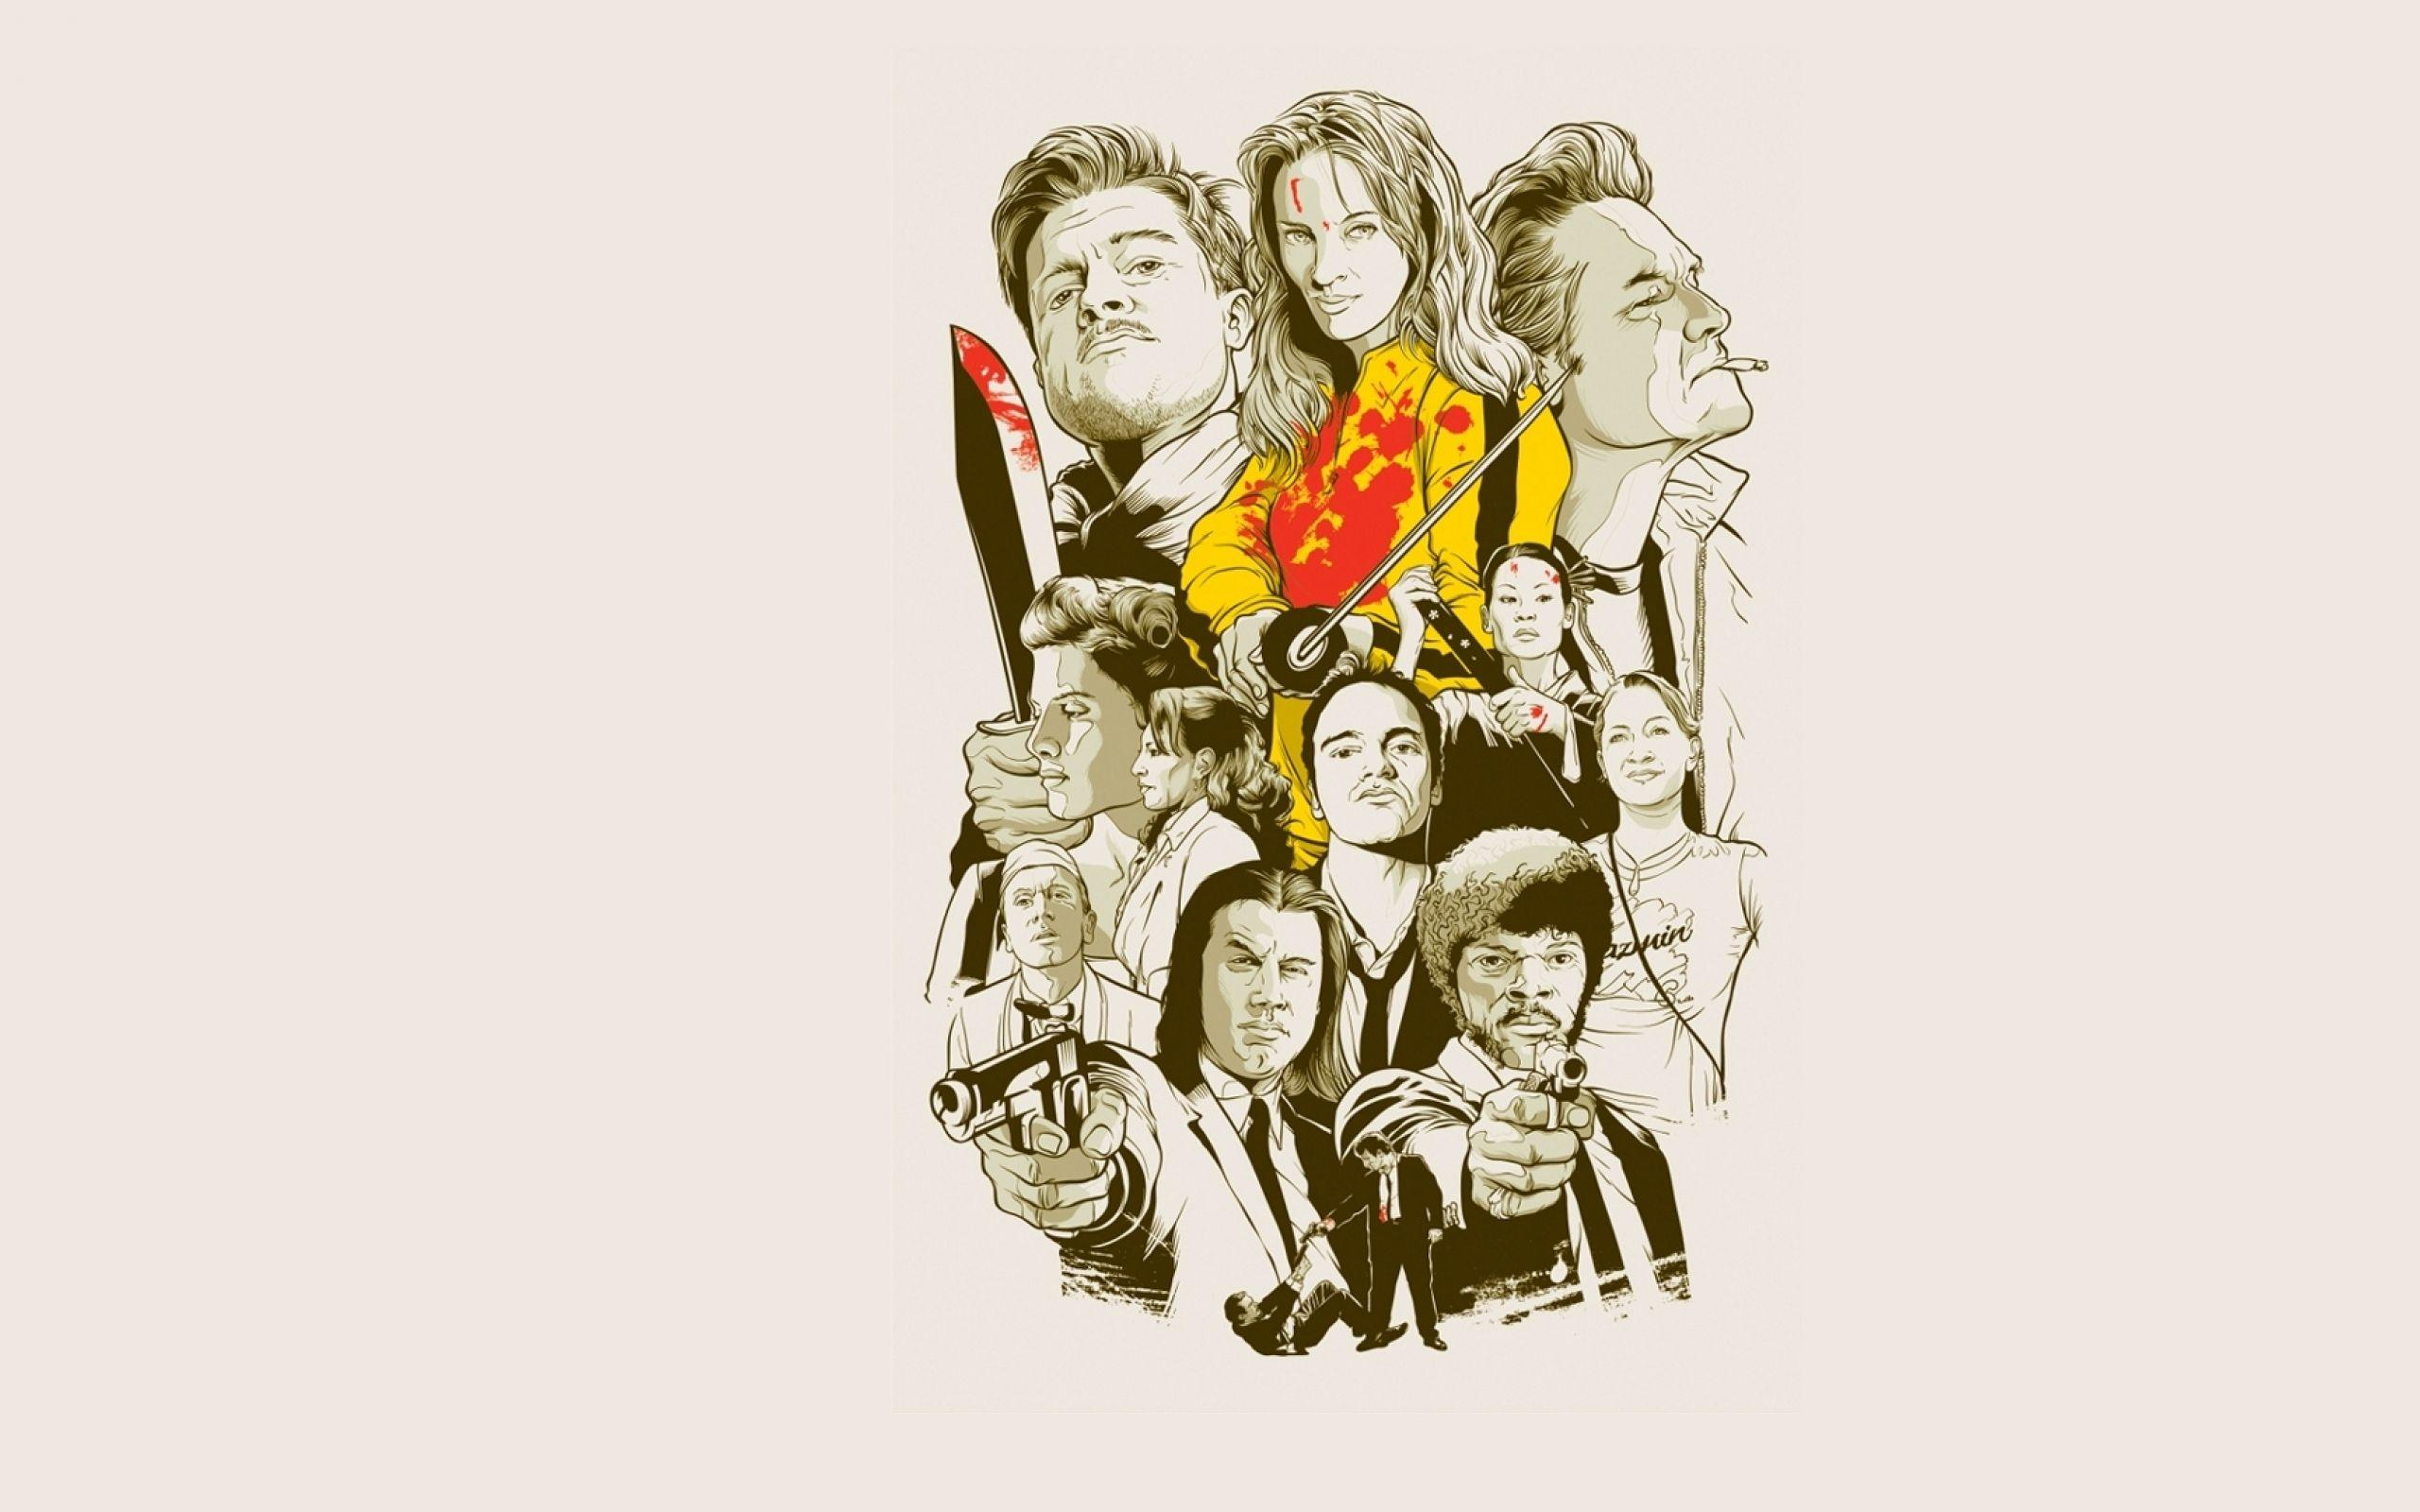 Inglourious Basterds Wallpapers, Best Inglourious Basterds